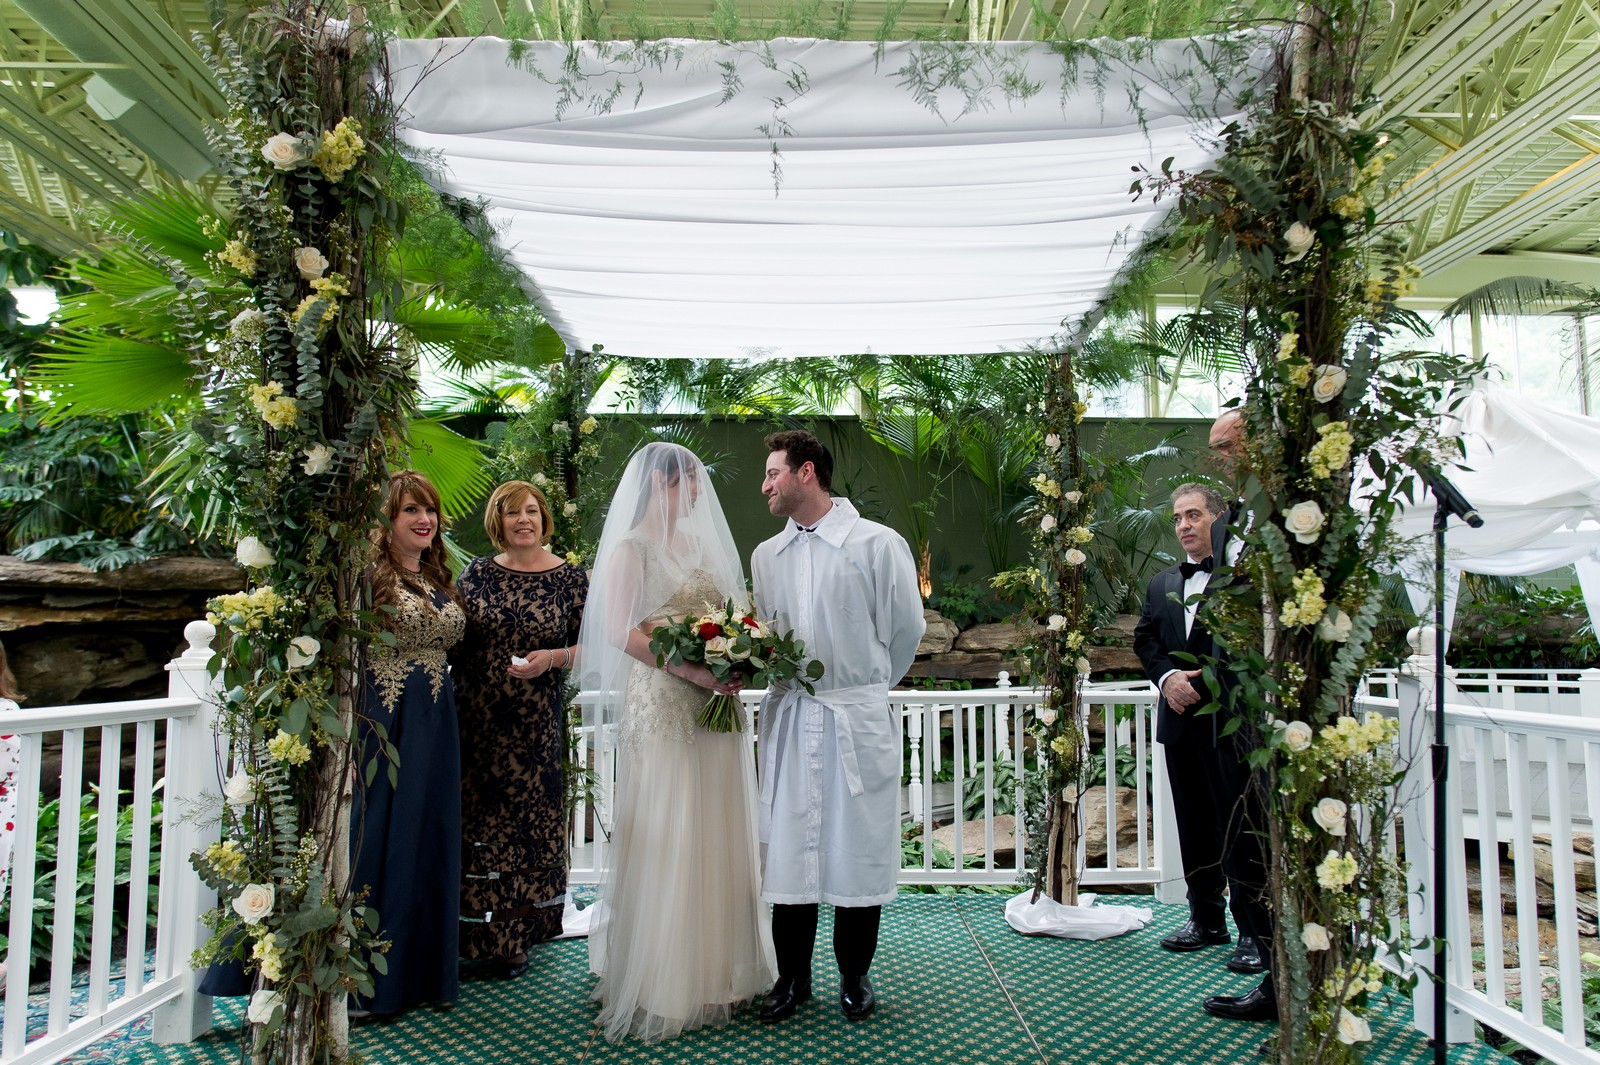 Yoey and Aaron's Memorial Day Modern Jewish Wedding at Anthony's Pier 9, New Windsor, NY Photos by Chaim Schvarcz bride groom chuppah ceremony